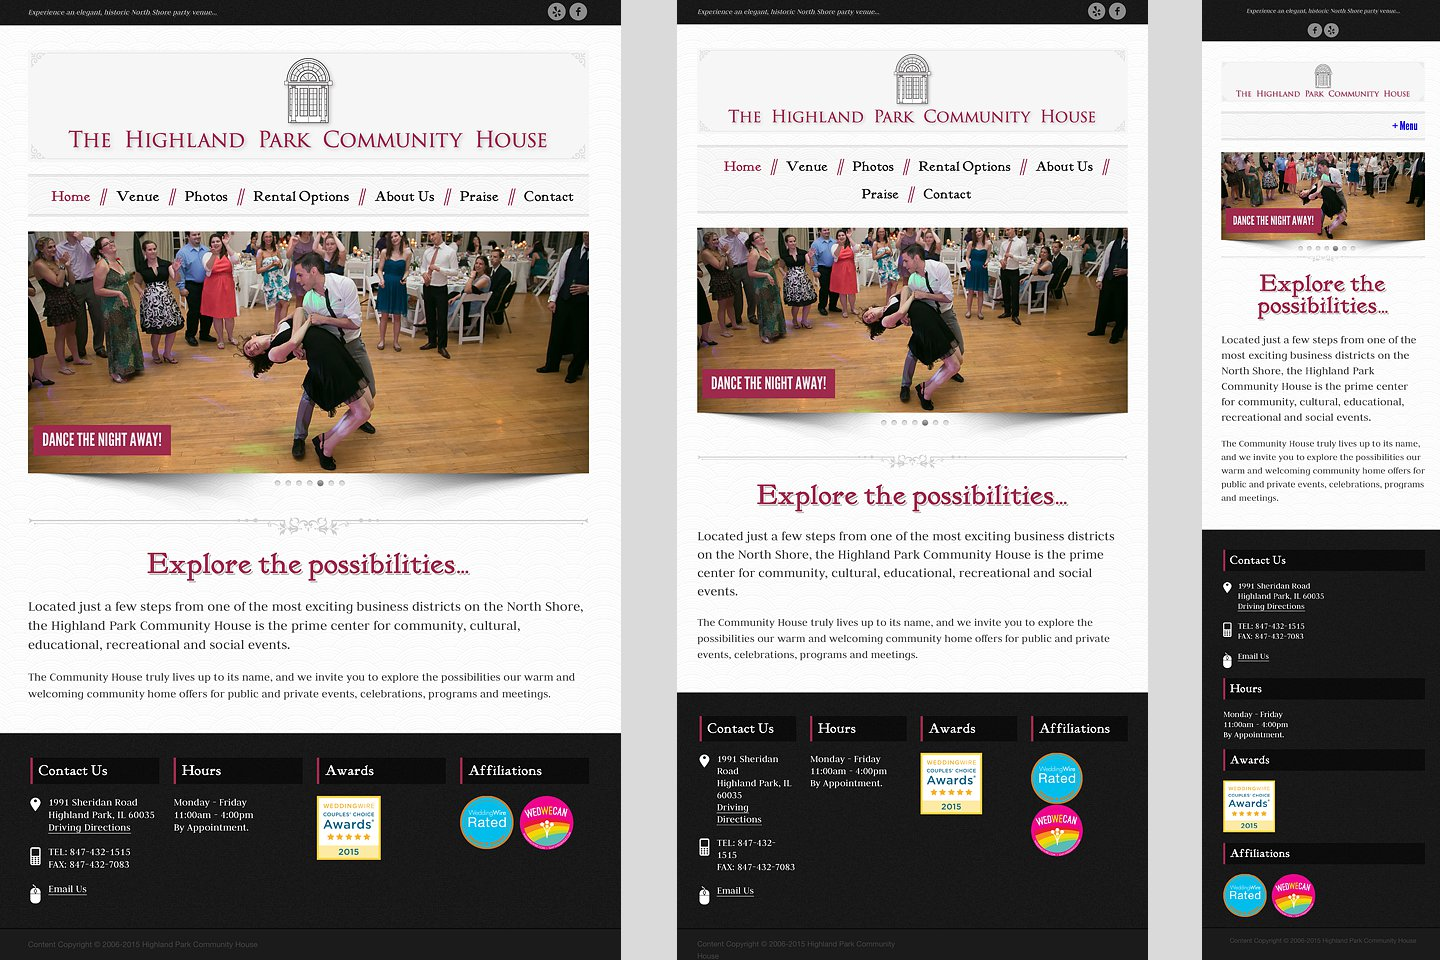 highland park community house sample web page layout showing responsive design by 4d inc